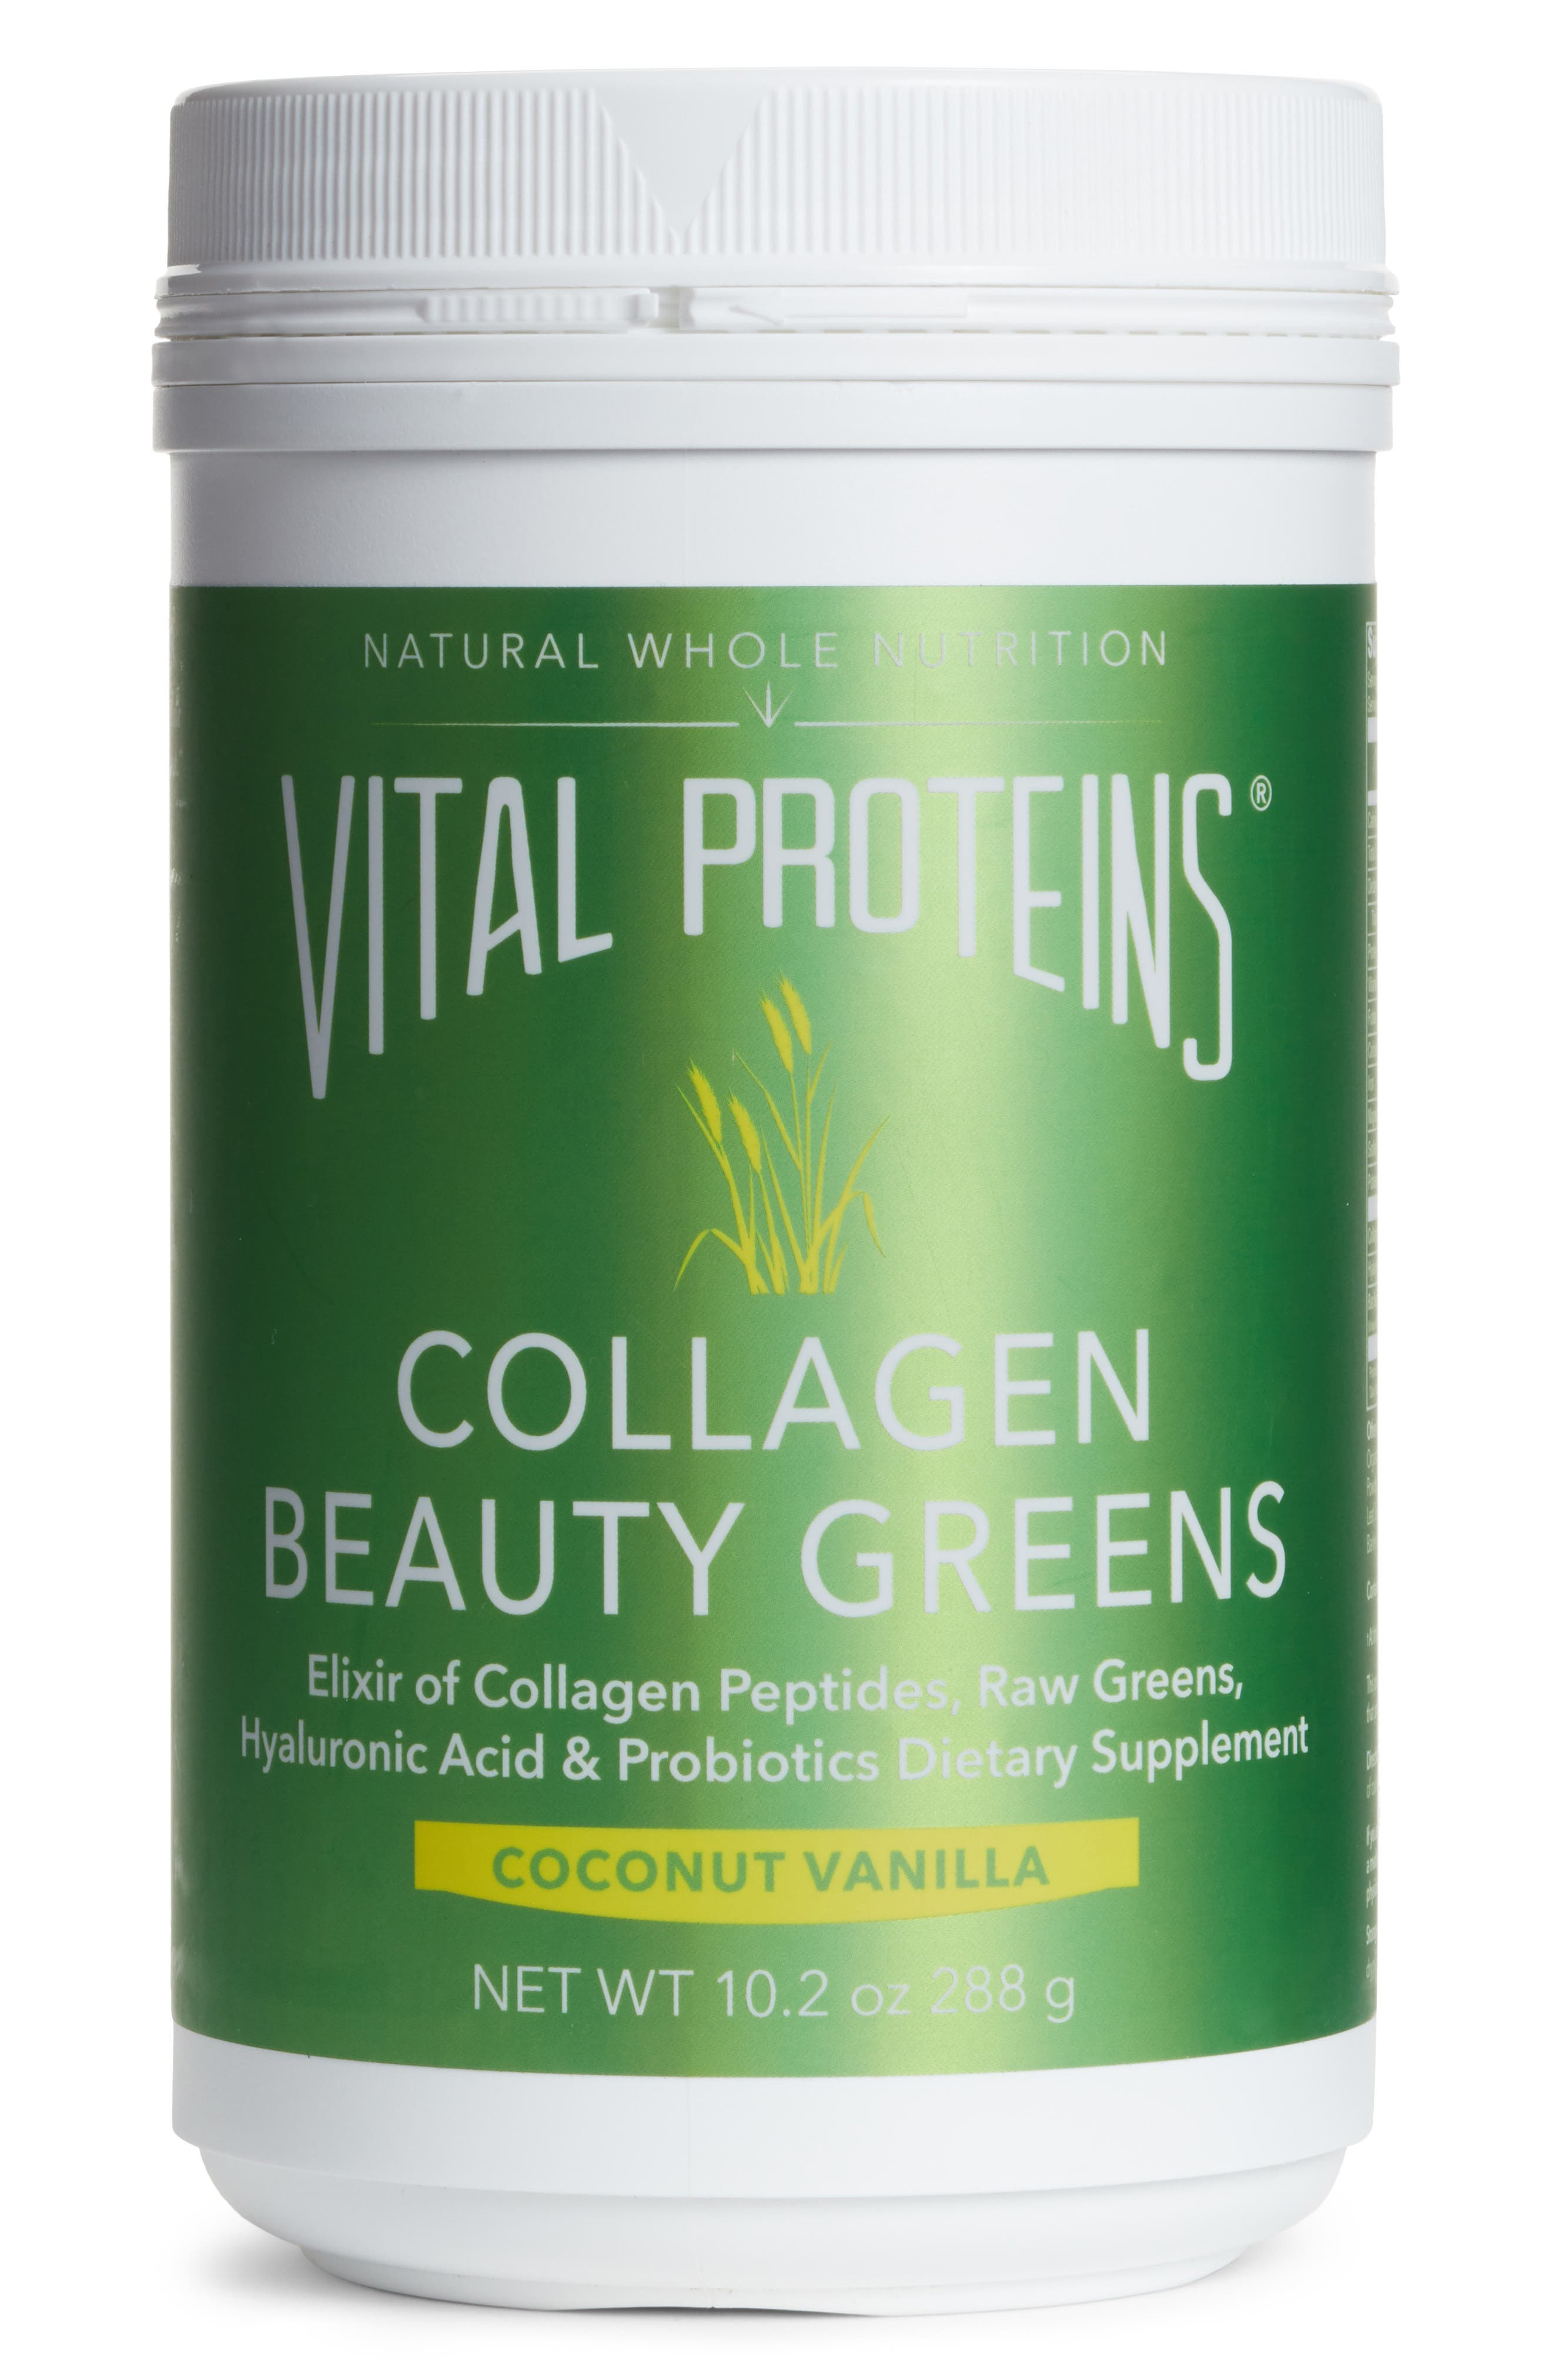 Collagen Beauty Greens Dietary Supplement,                         Main,                         color, 960